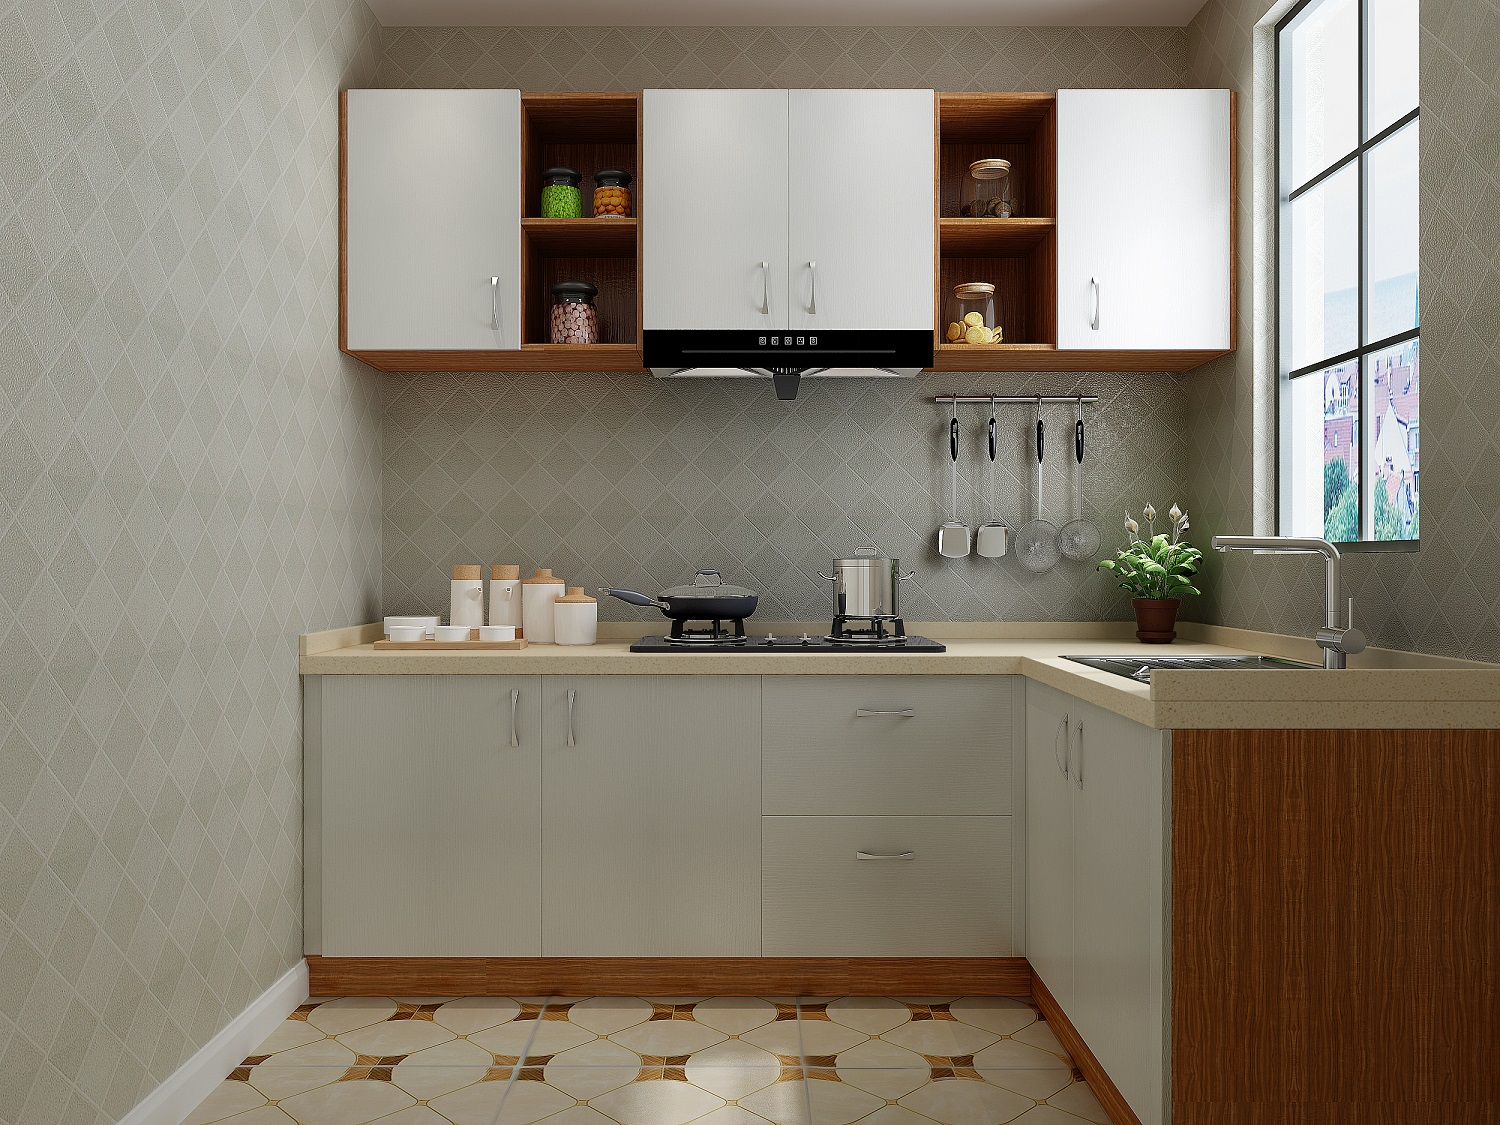 What Is the Best Color of the Kitchen Countertop? How to Match the Color of the Kitchen Countertop?